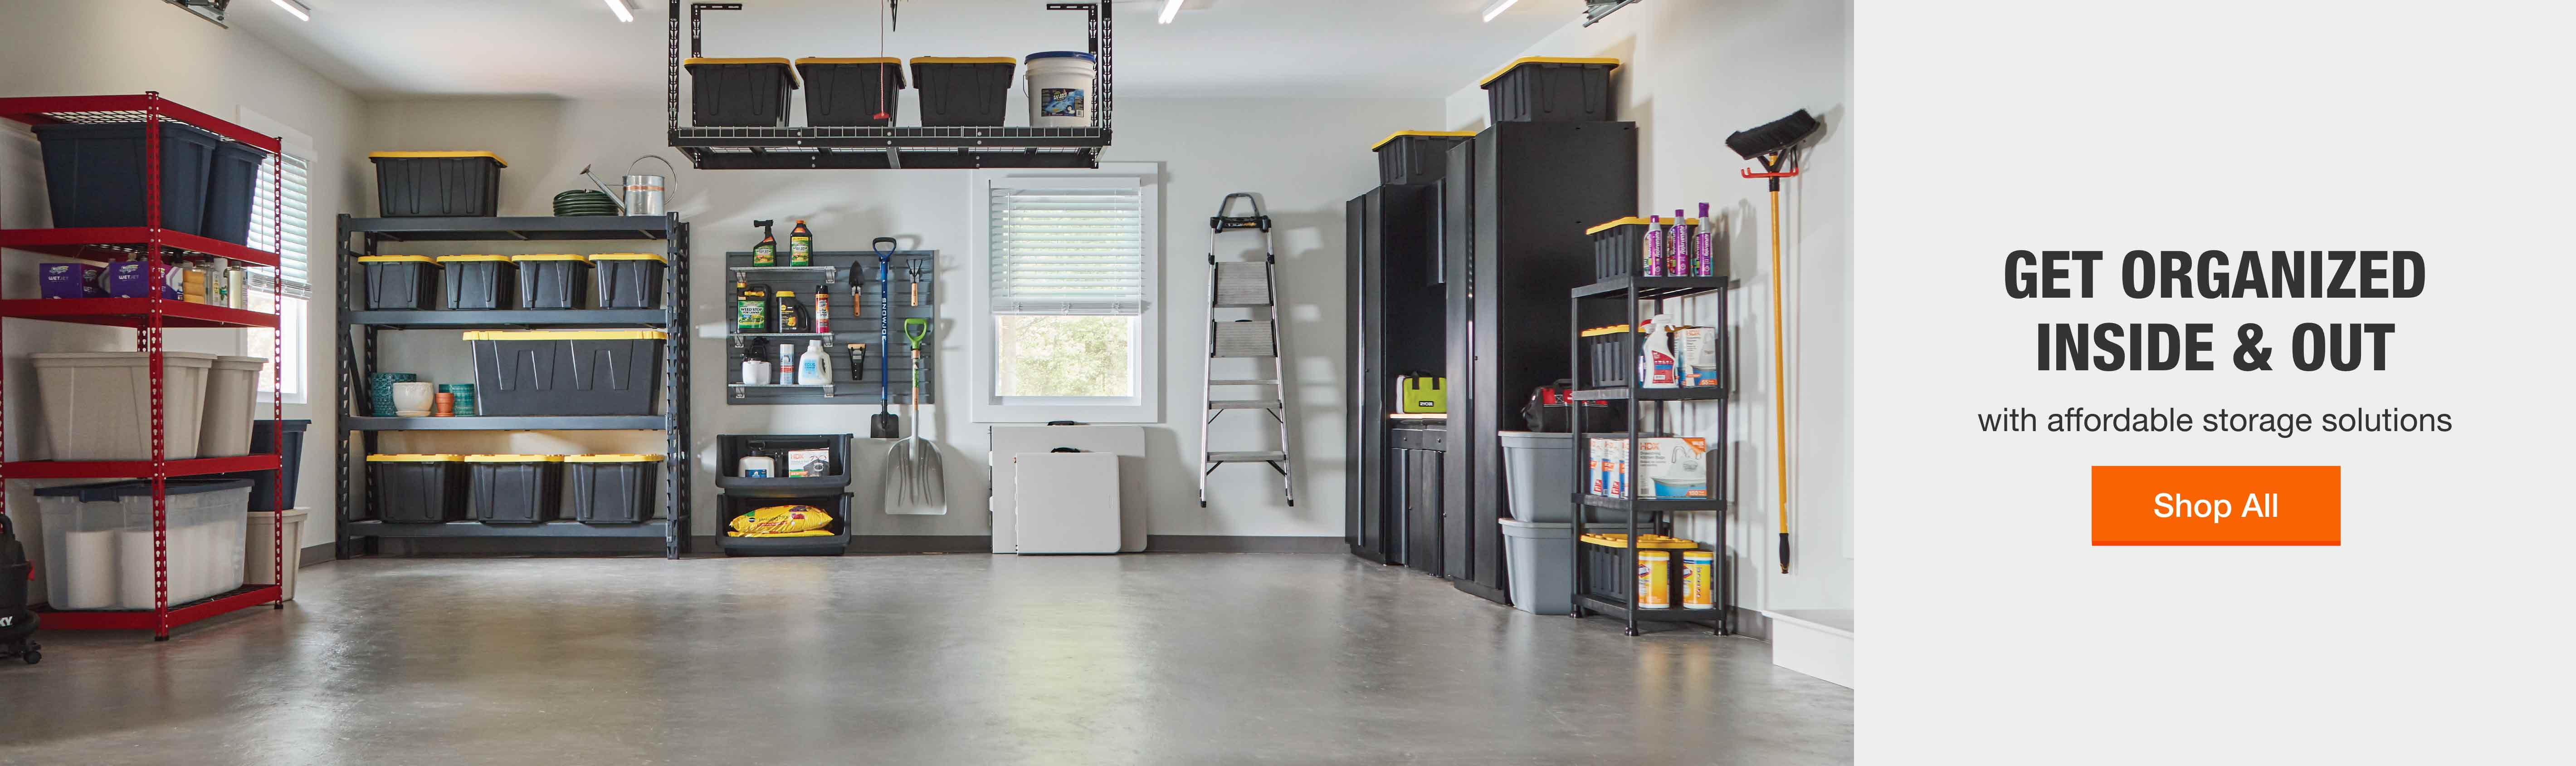 Get organized inside and out with affordable storage solutions